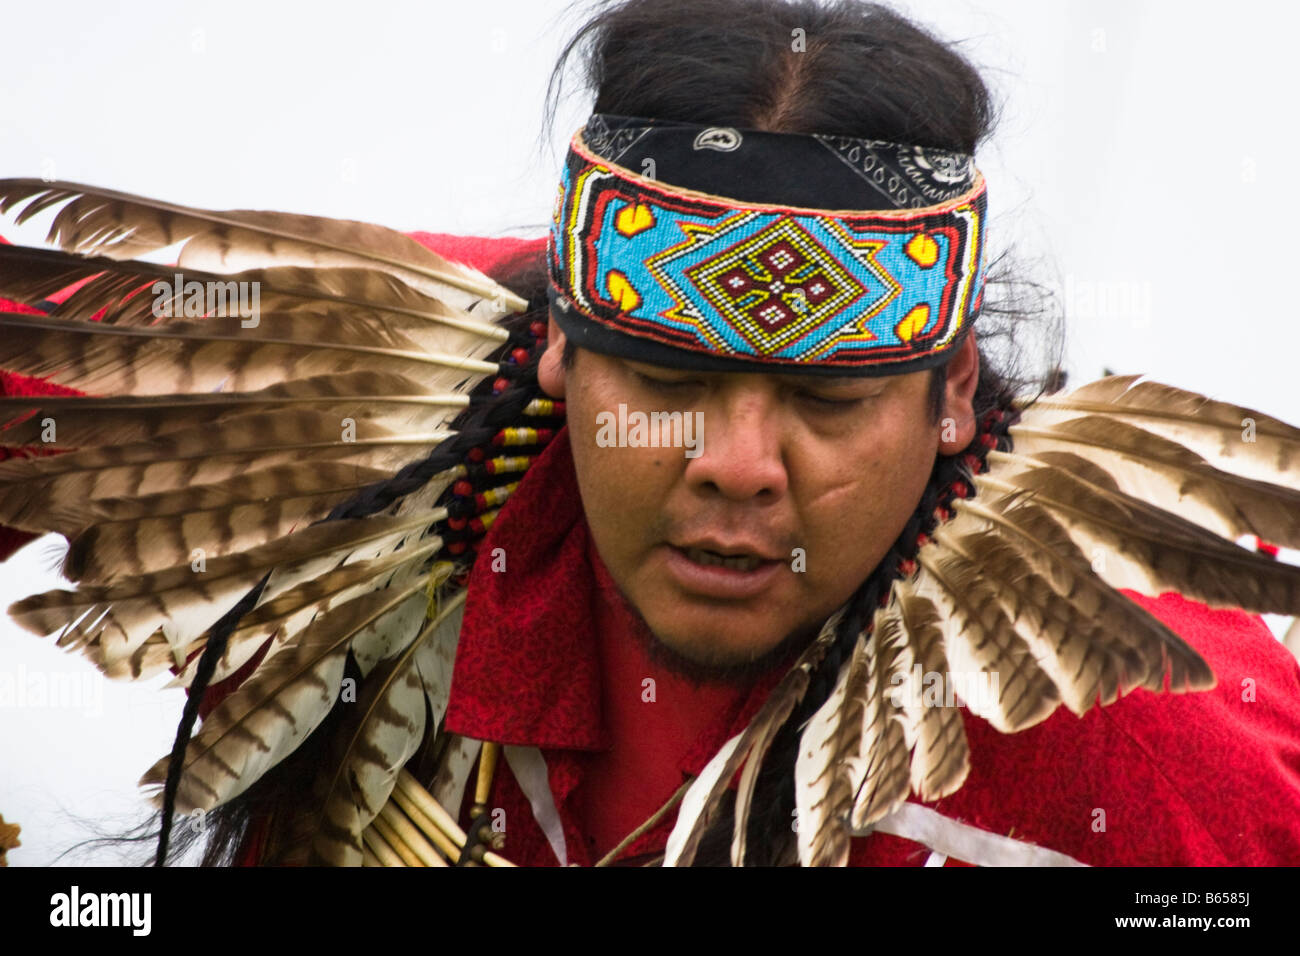 A Native American man dances at the Healing Horse Spirit PowWow in Mt. Airy, Maryland. - Stock Image